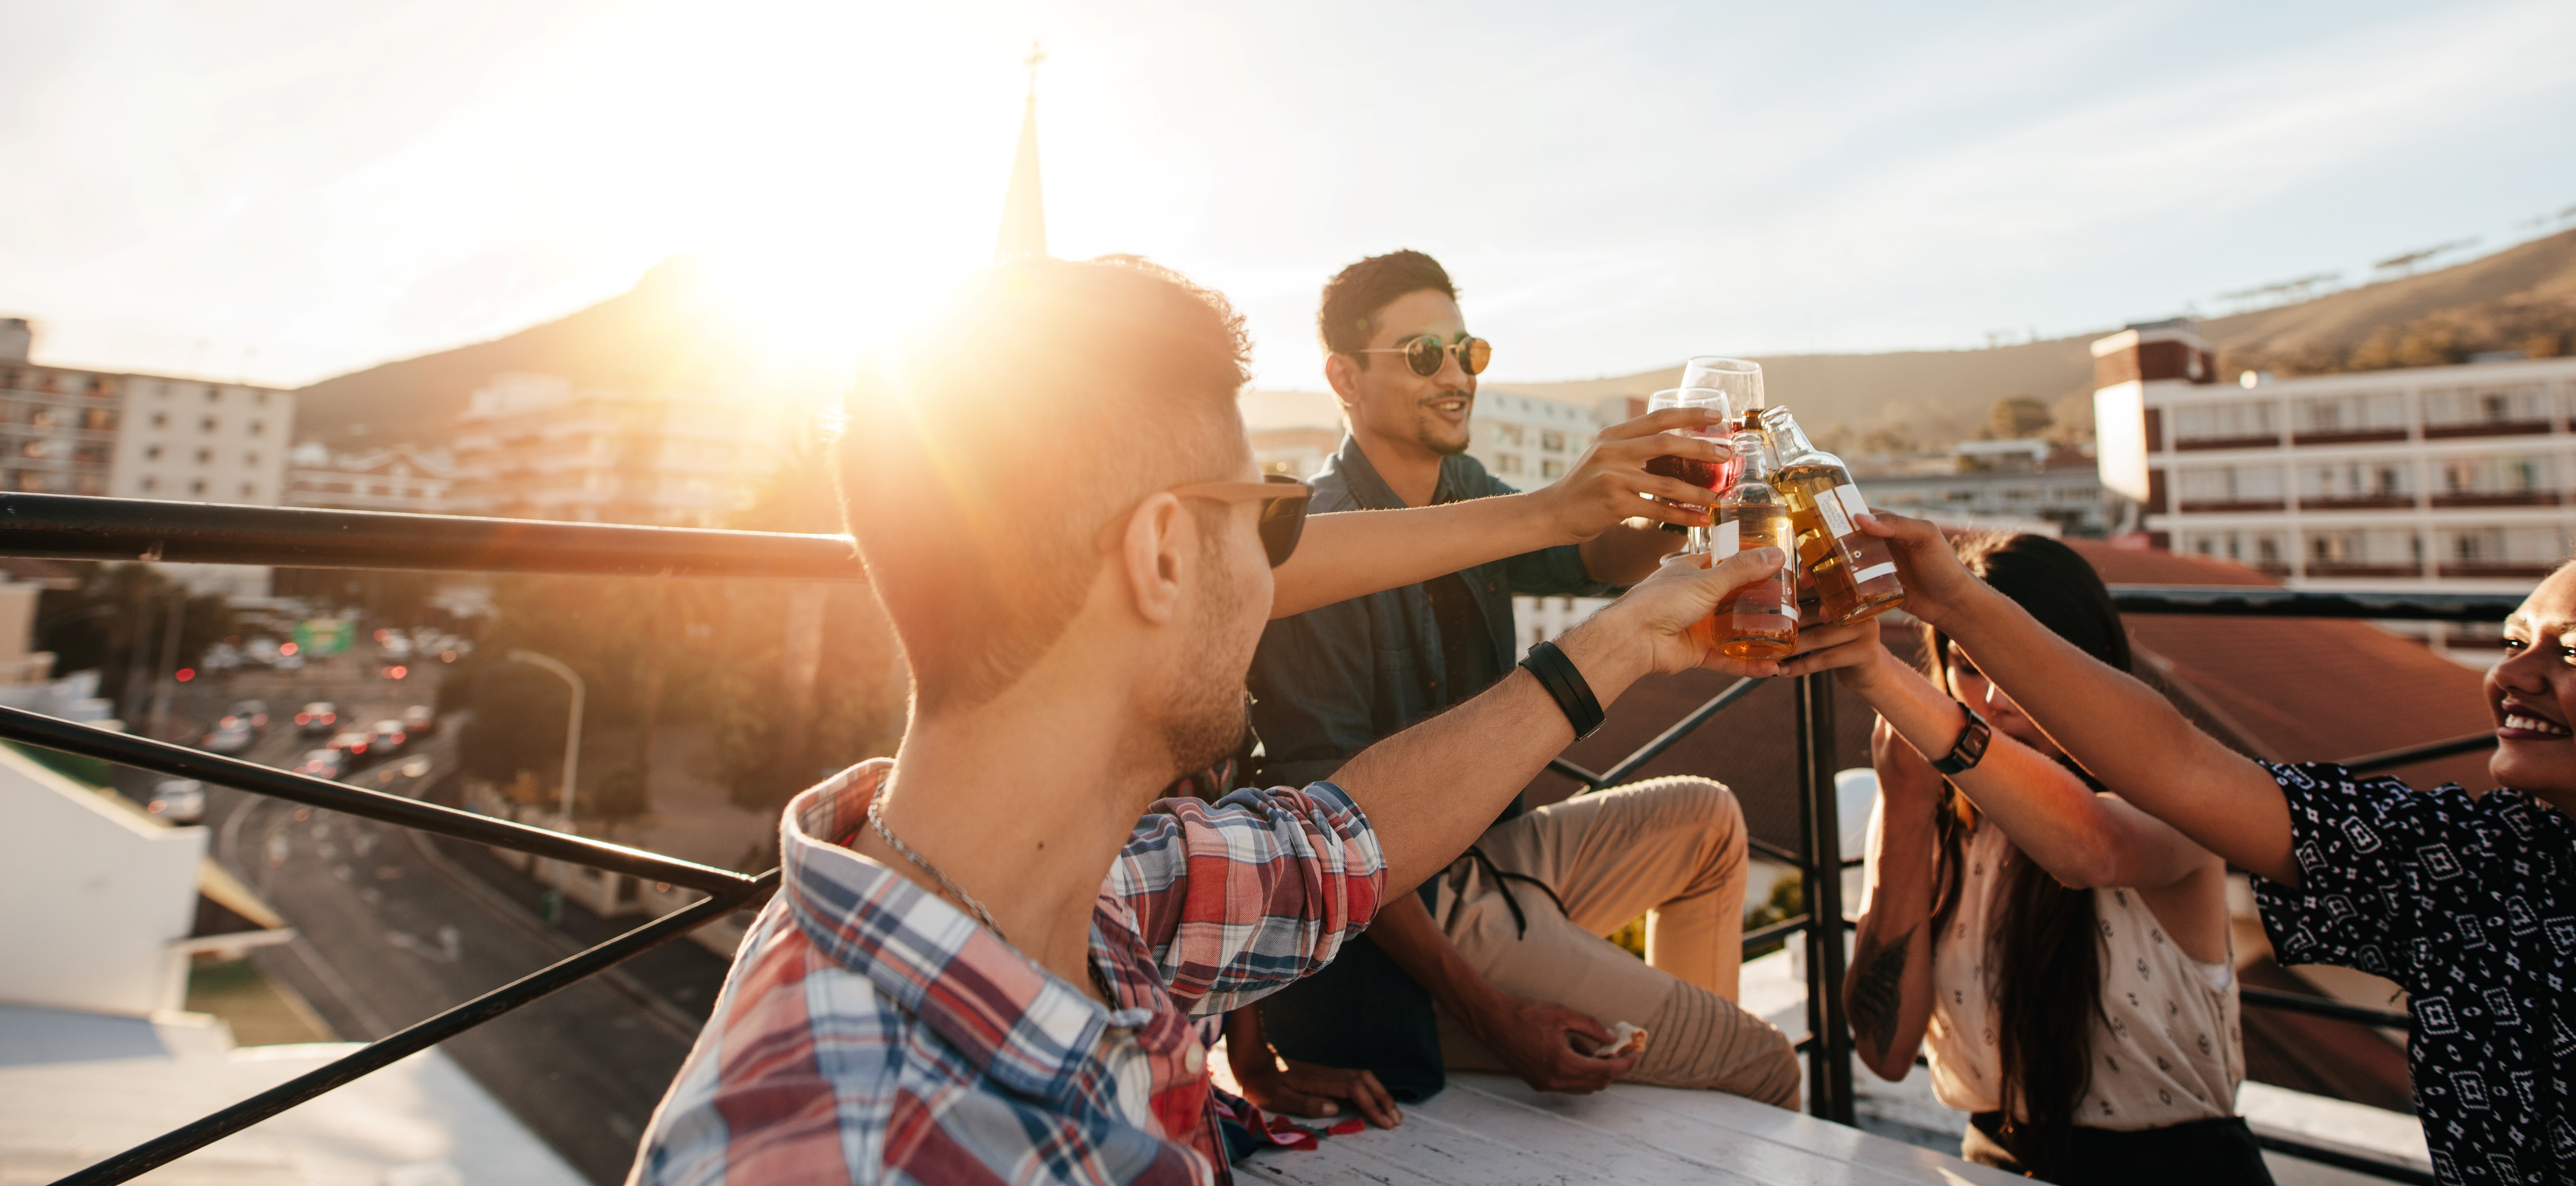 Friends are doing a toast on a rooftop. The autistic friend here would not be having a drink because he is a recovering addict.